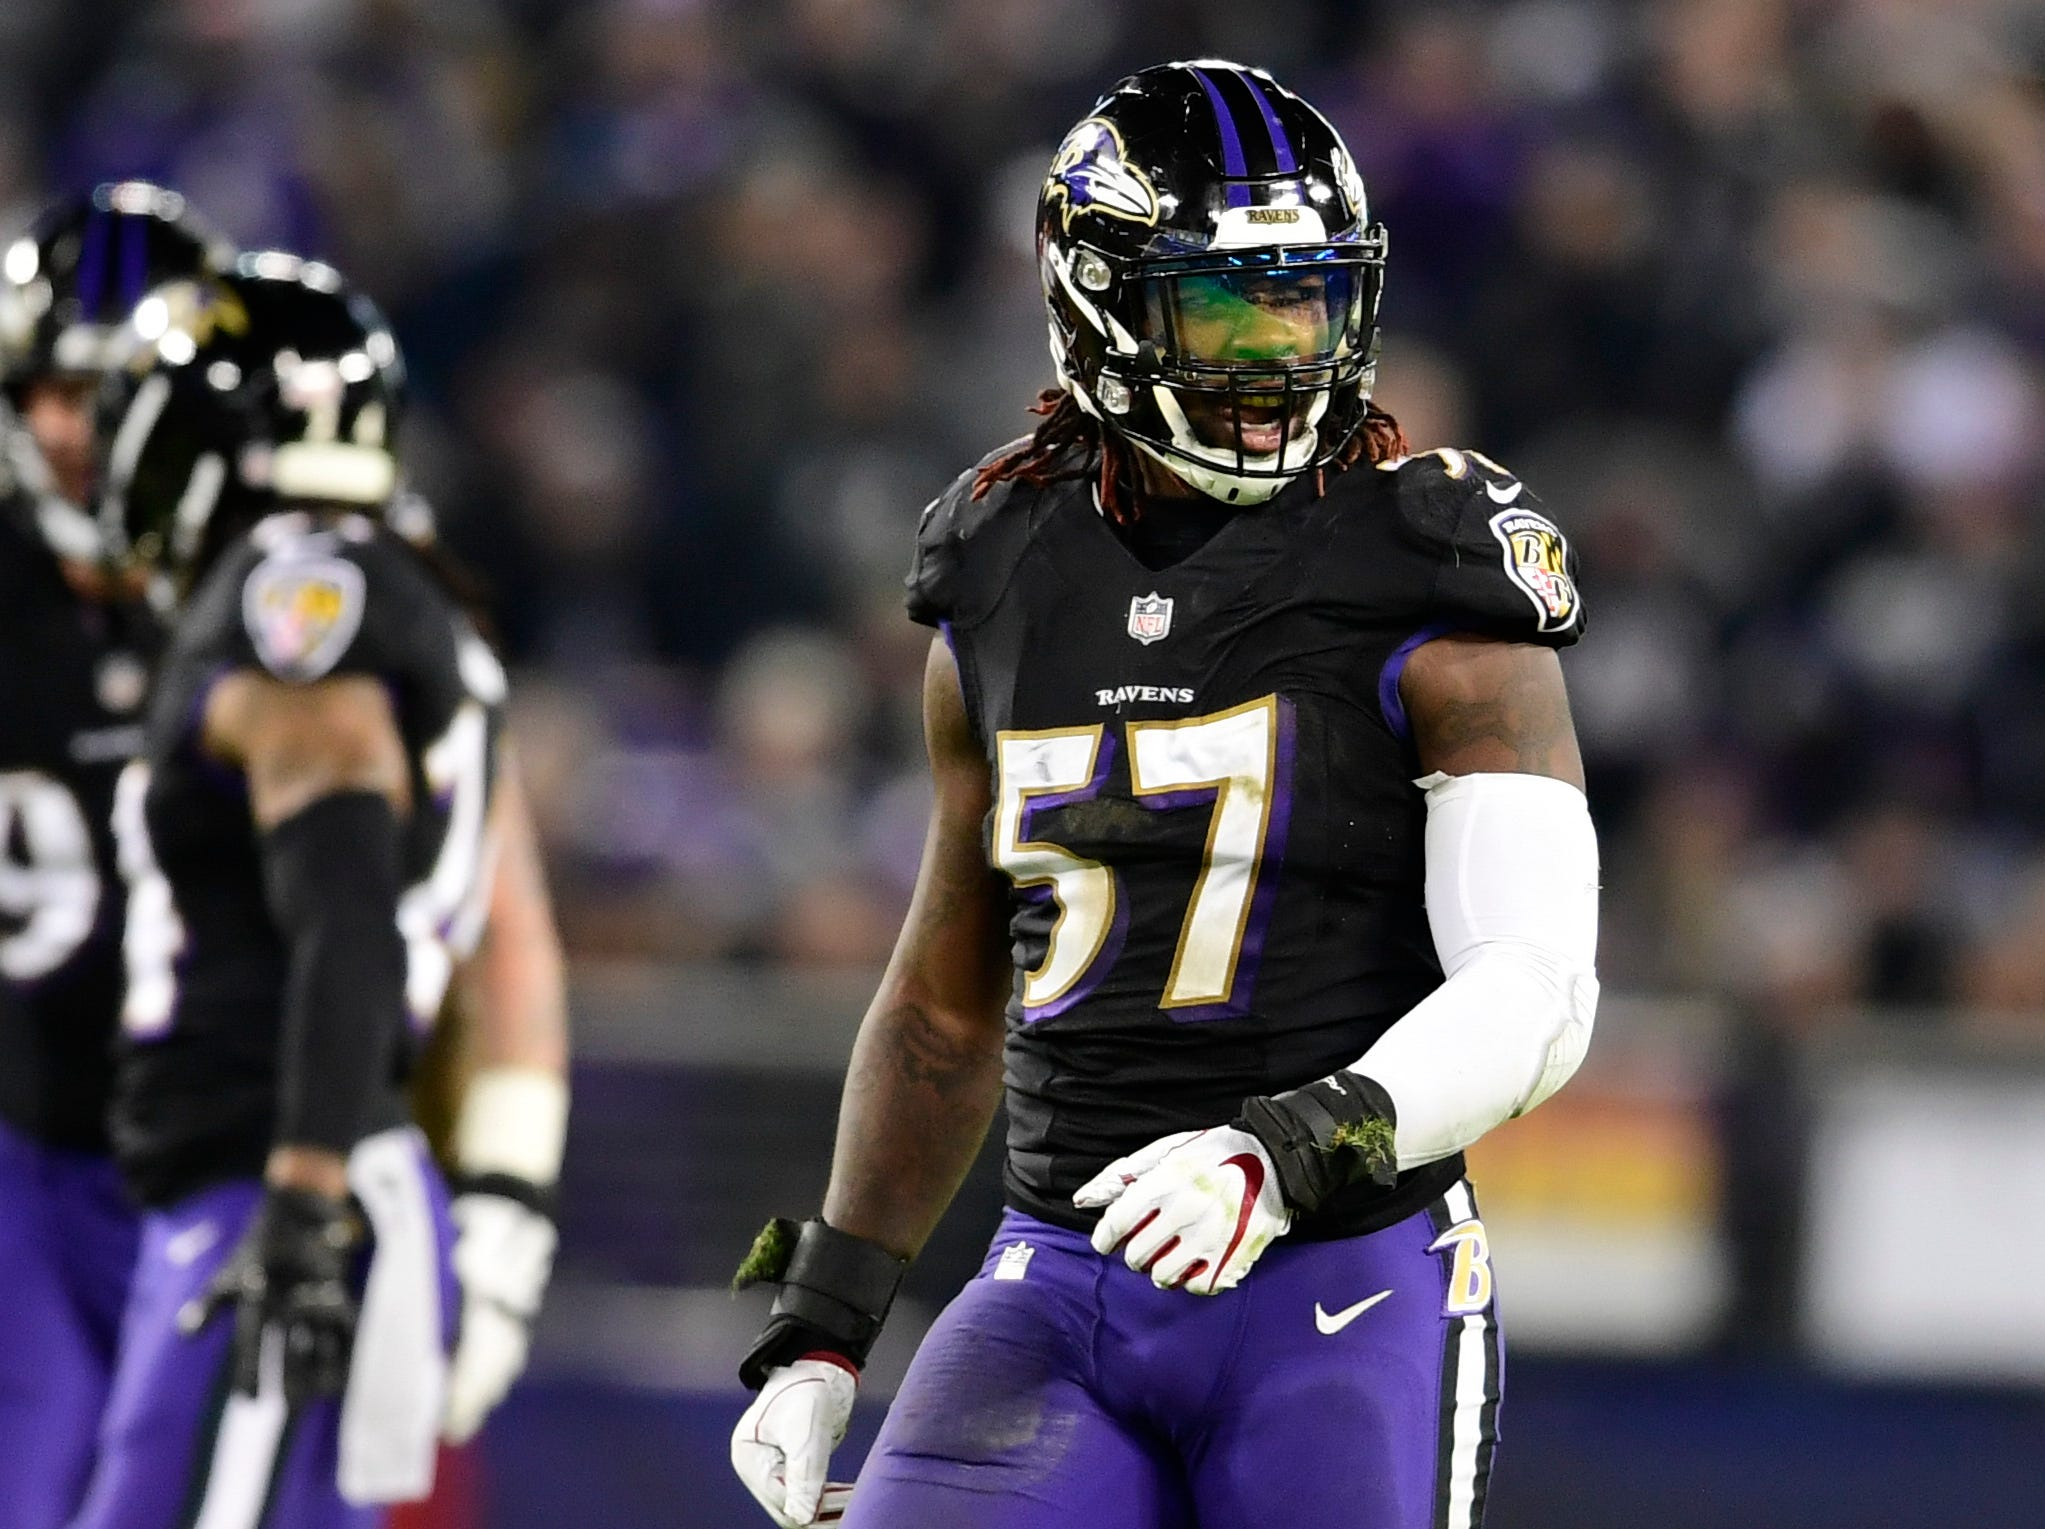 5. C.J. Mosley, ILB, Ravens: Agreed to deal with Jets